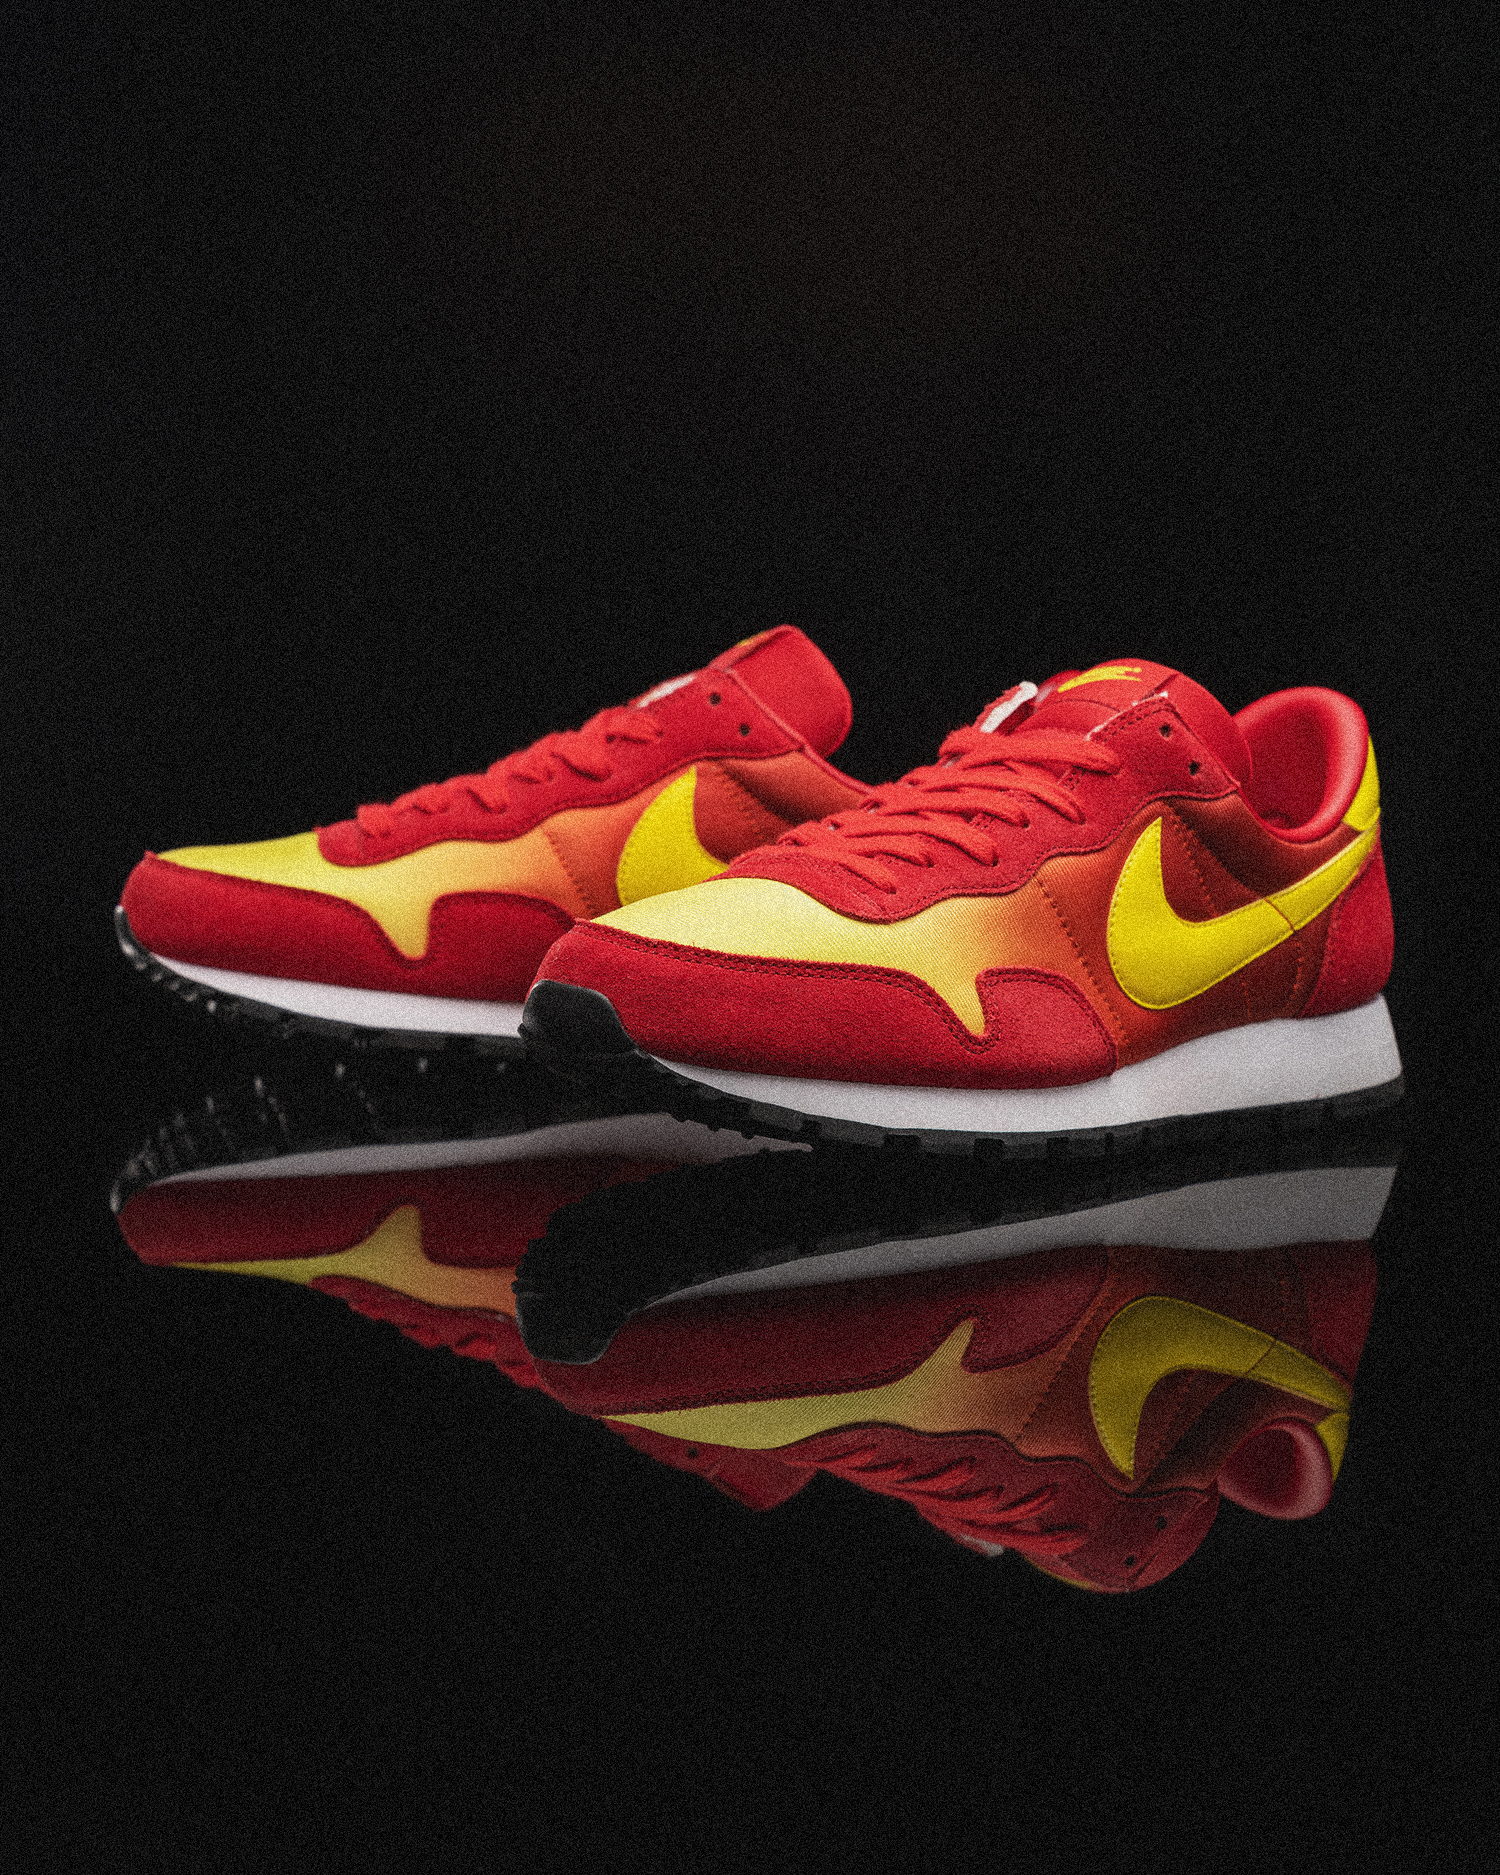 We are bringing back the cult classic Nike Omega Flame